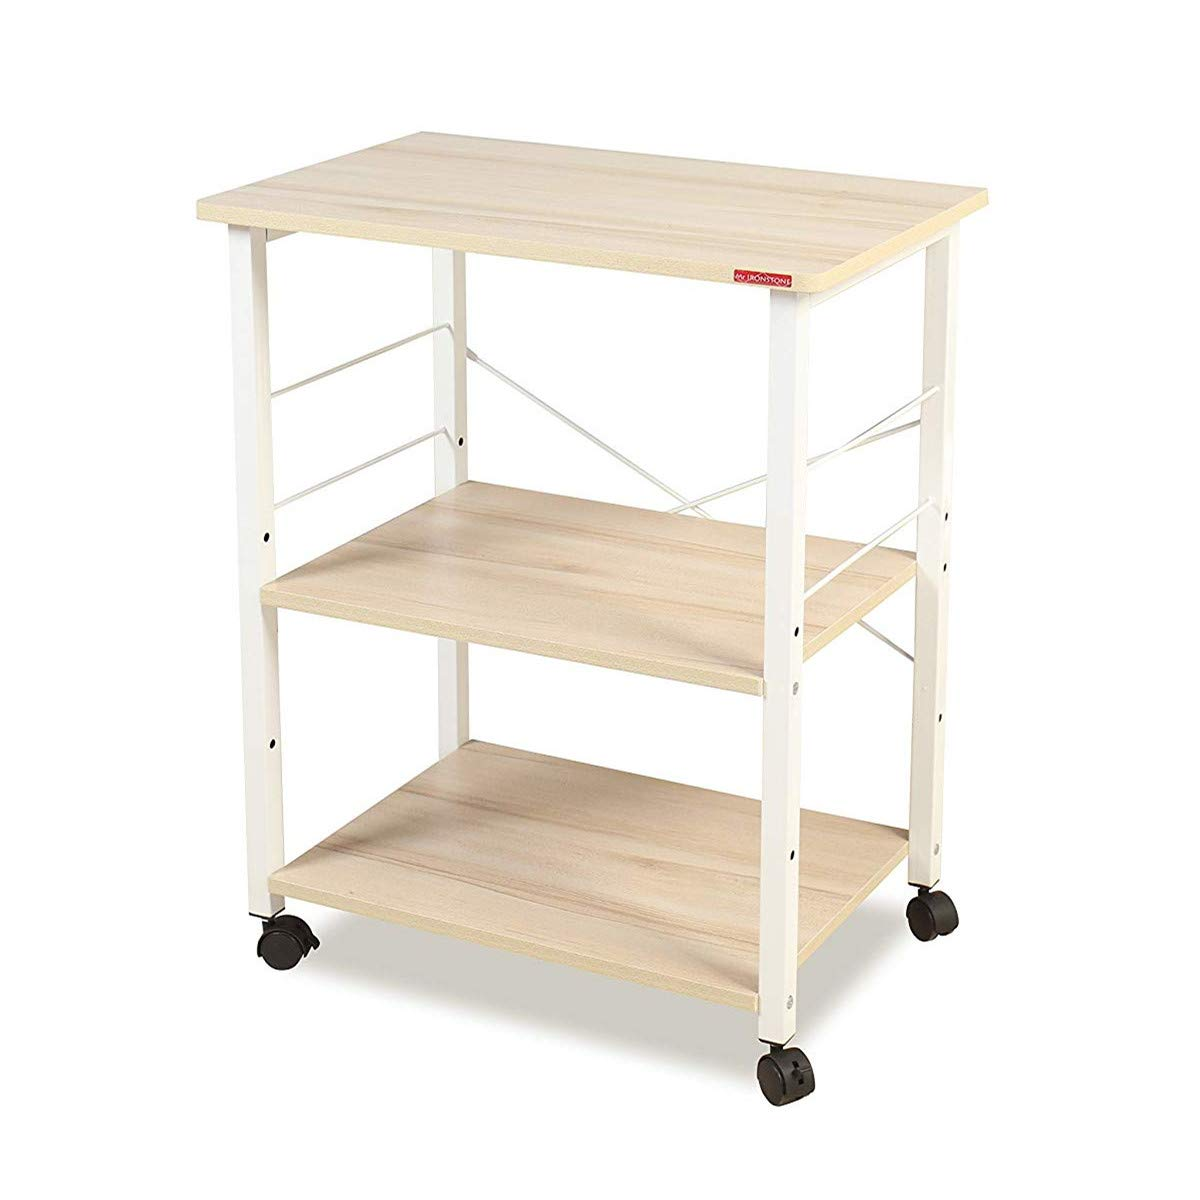 Mr IRONSTONE 3-Tier Kitchen Baker